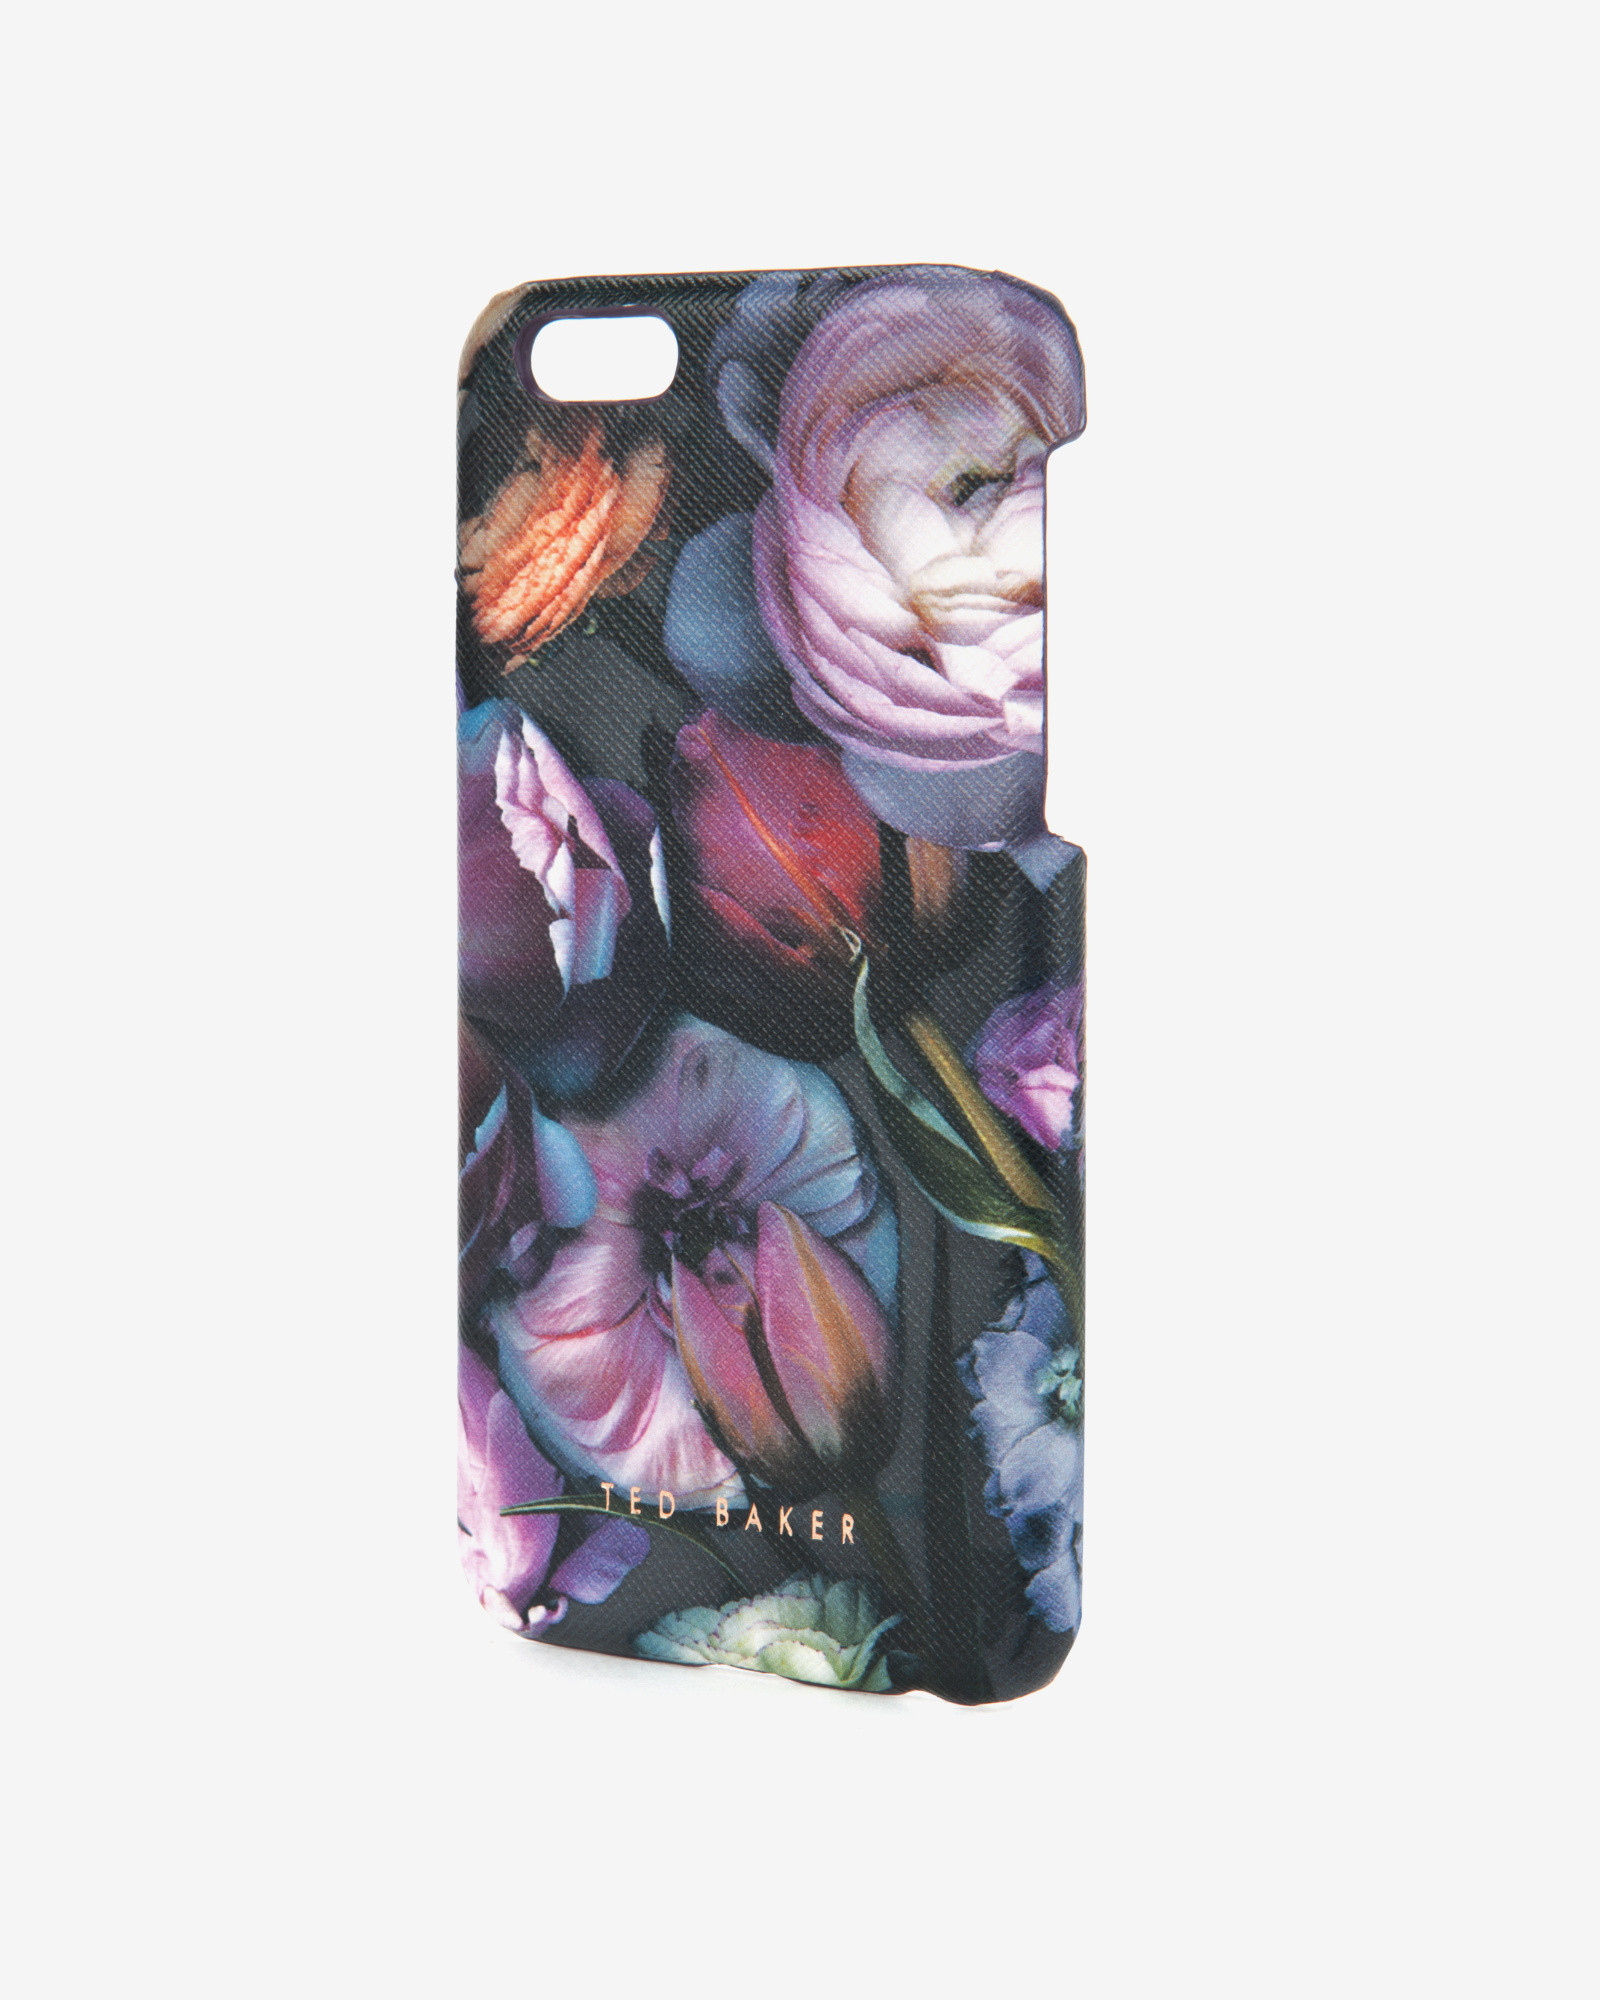 470a4281 Ted Baker Shadow Floral Iphone 6 Case in Gray - Lyst